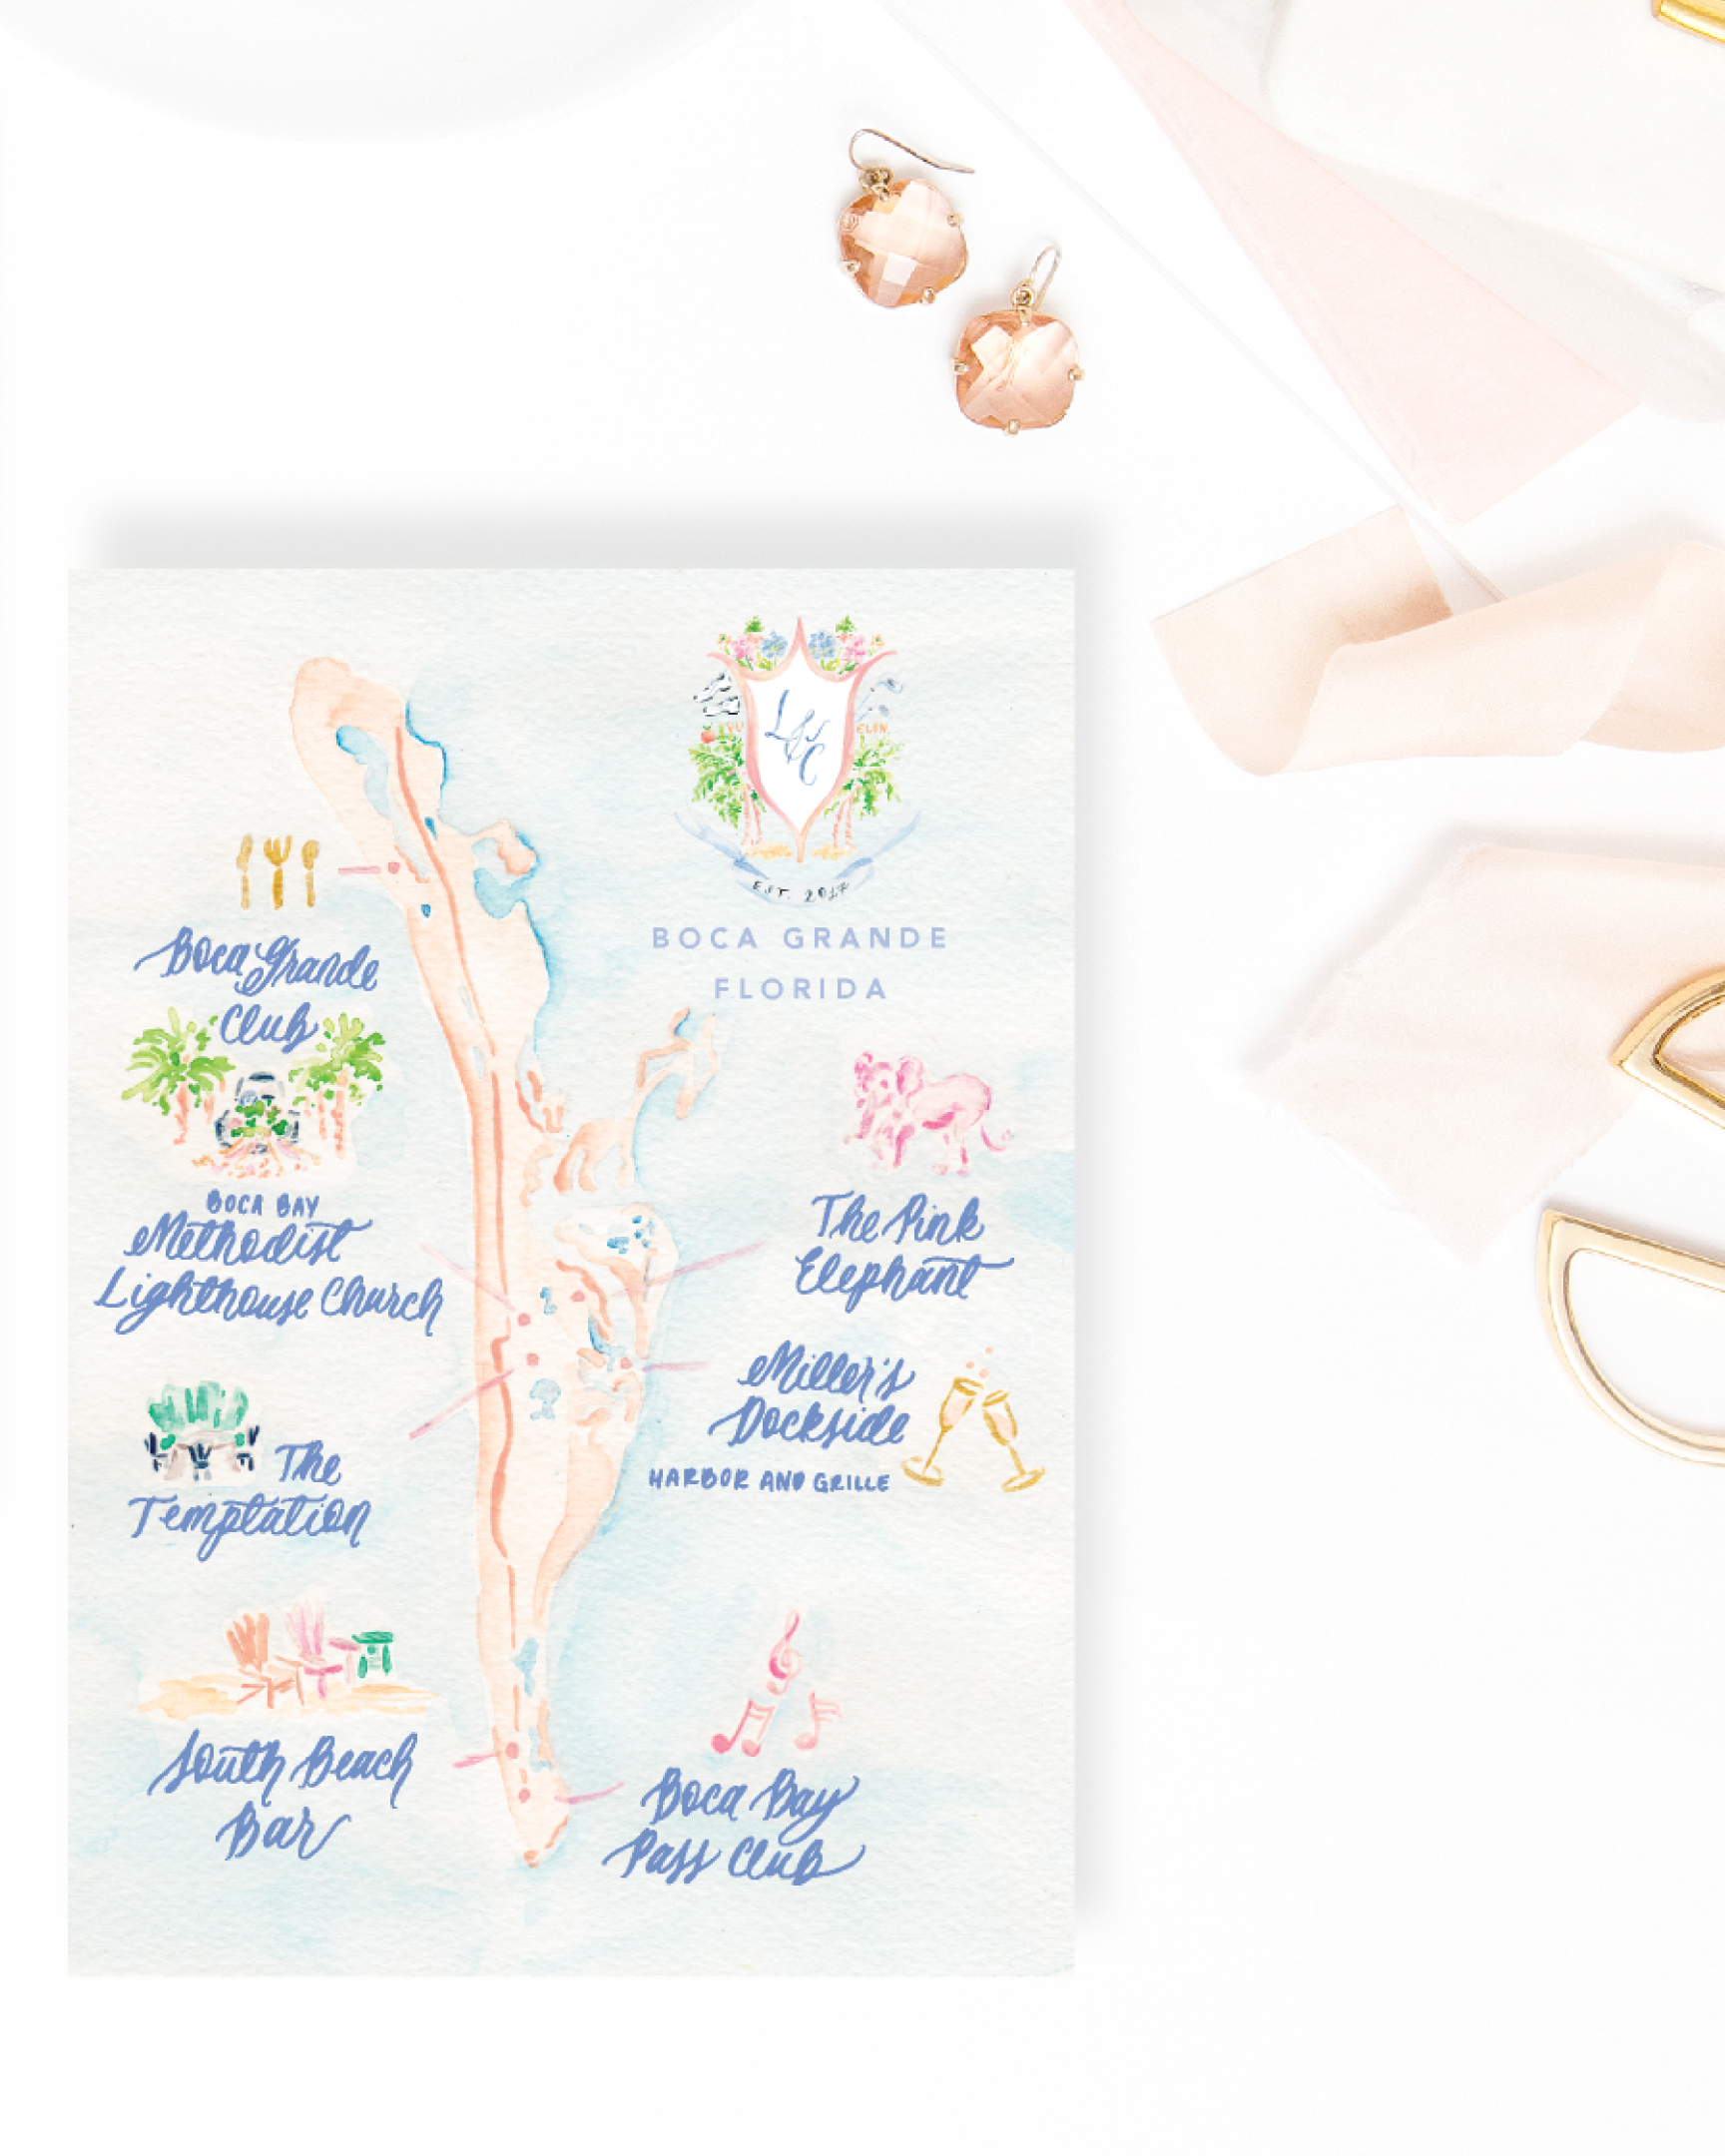 Custom watercolor wedding map of Boca Grande, Florida by Simply Jessica Marie   Photo by SC Stockshop